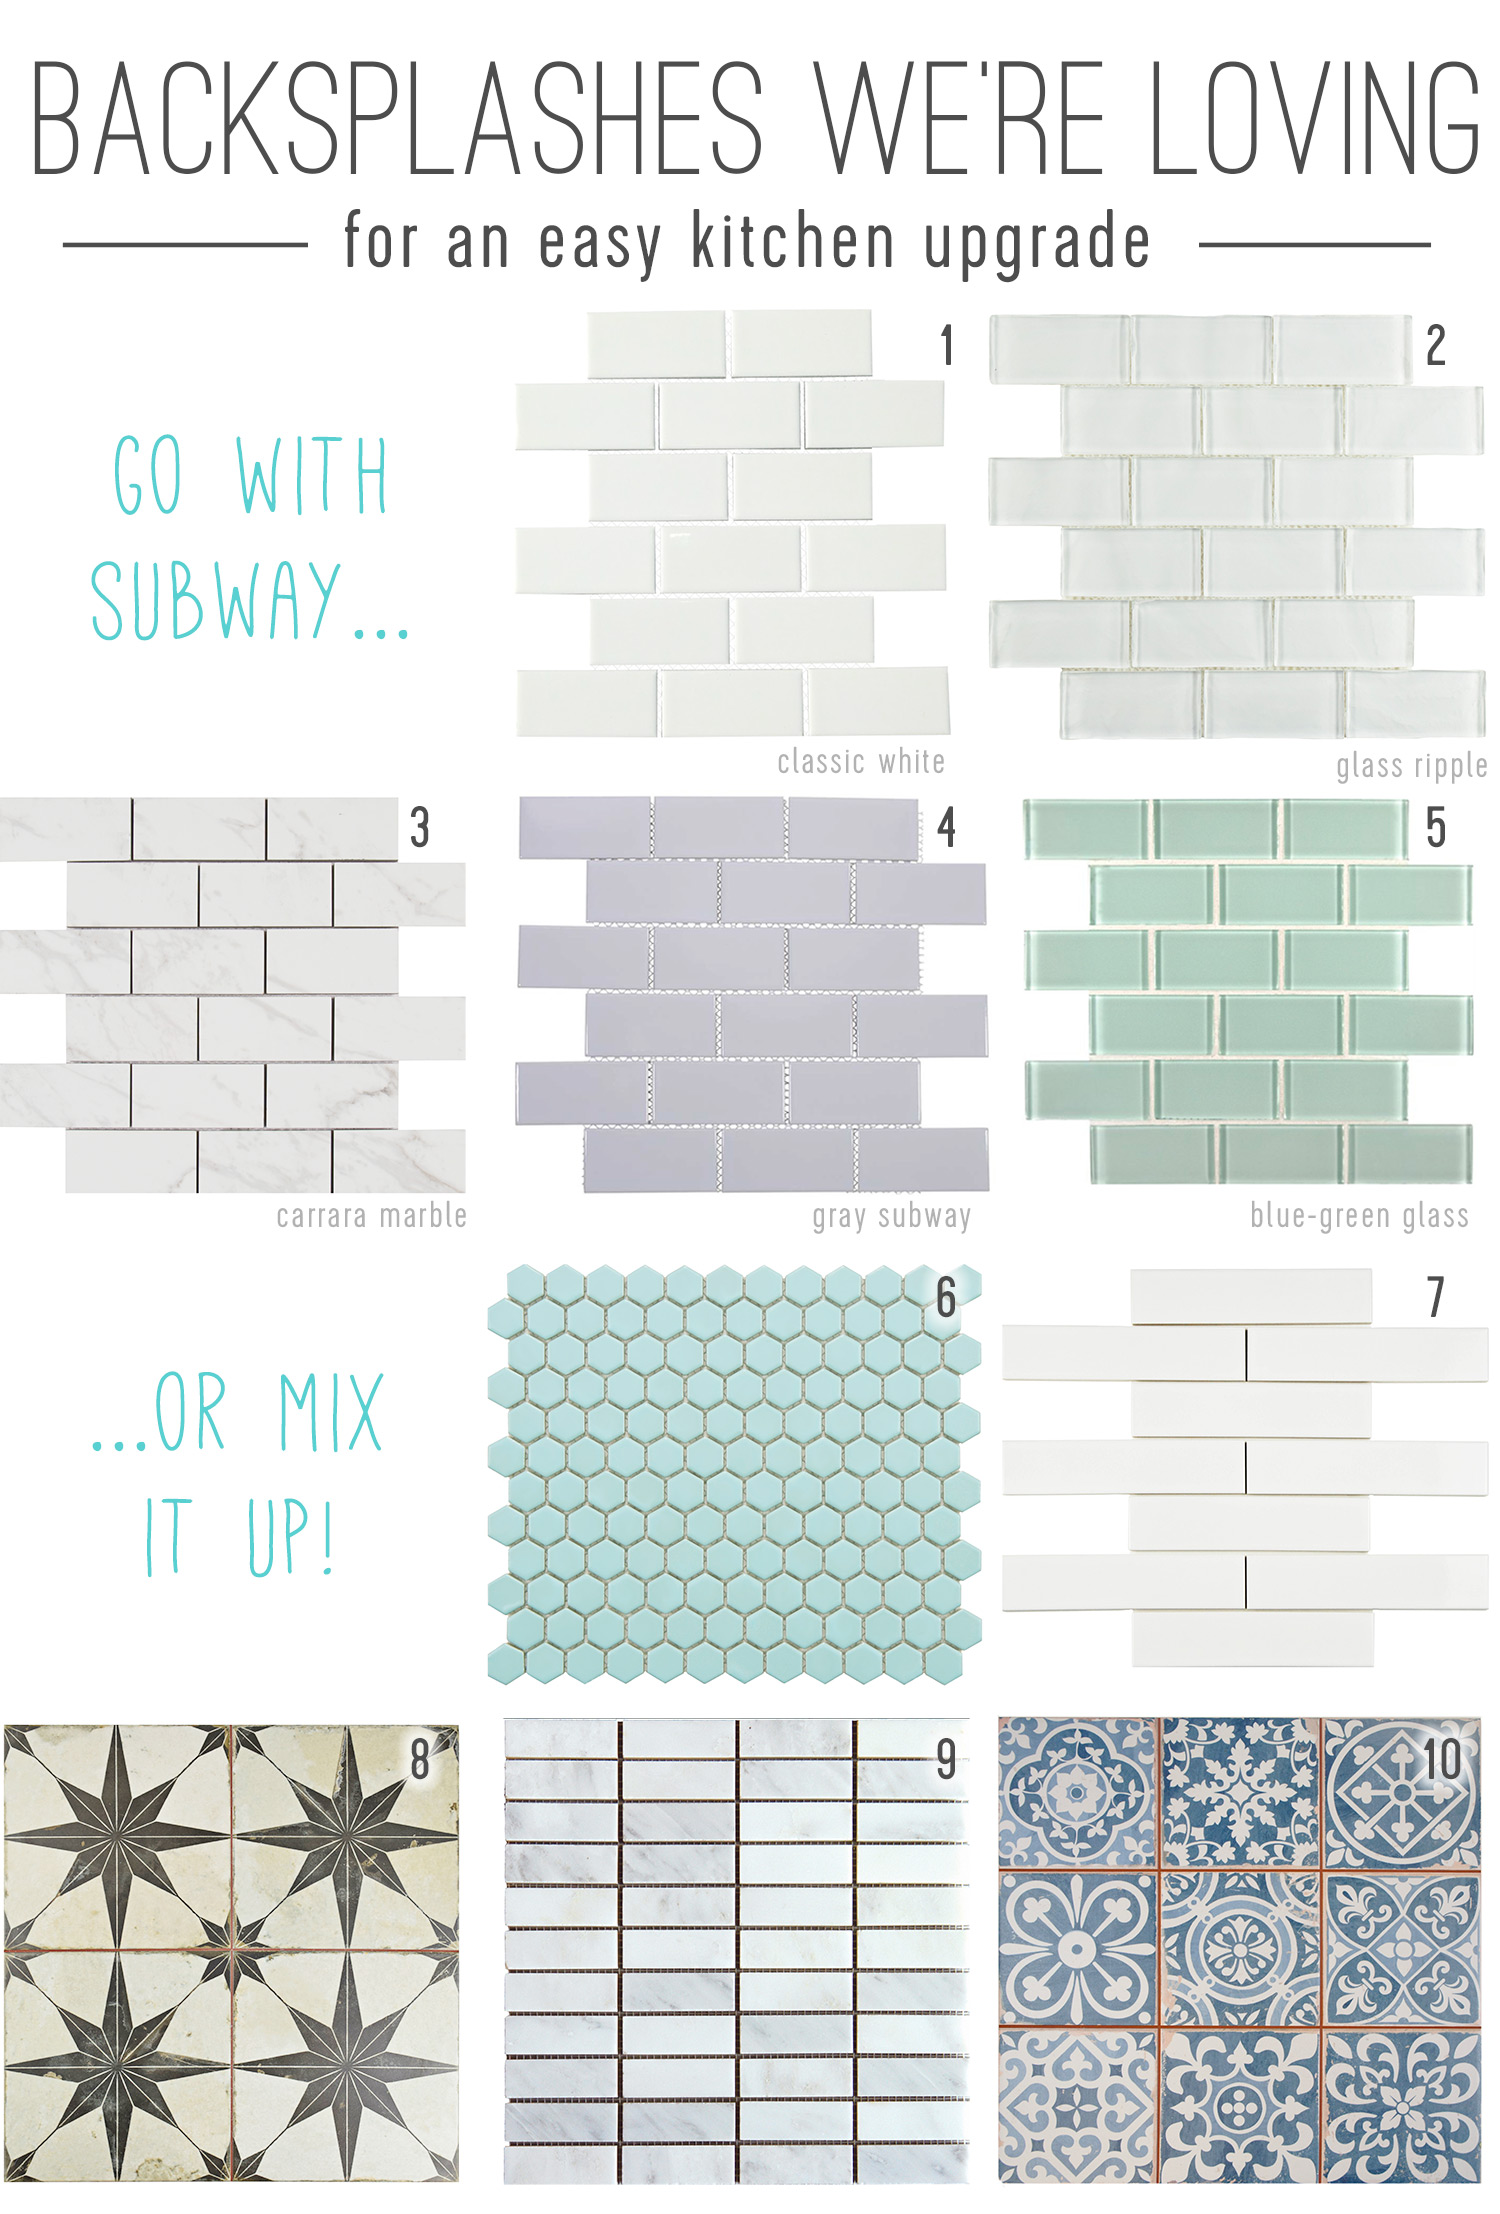 Backsplash-tile-picks-that-are-budget-friendly-and-perfect-for-a-kitchen-update-wallpaper-wp4003225-1